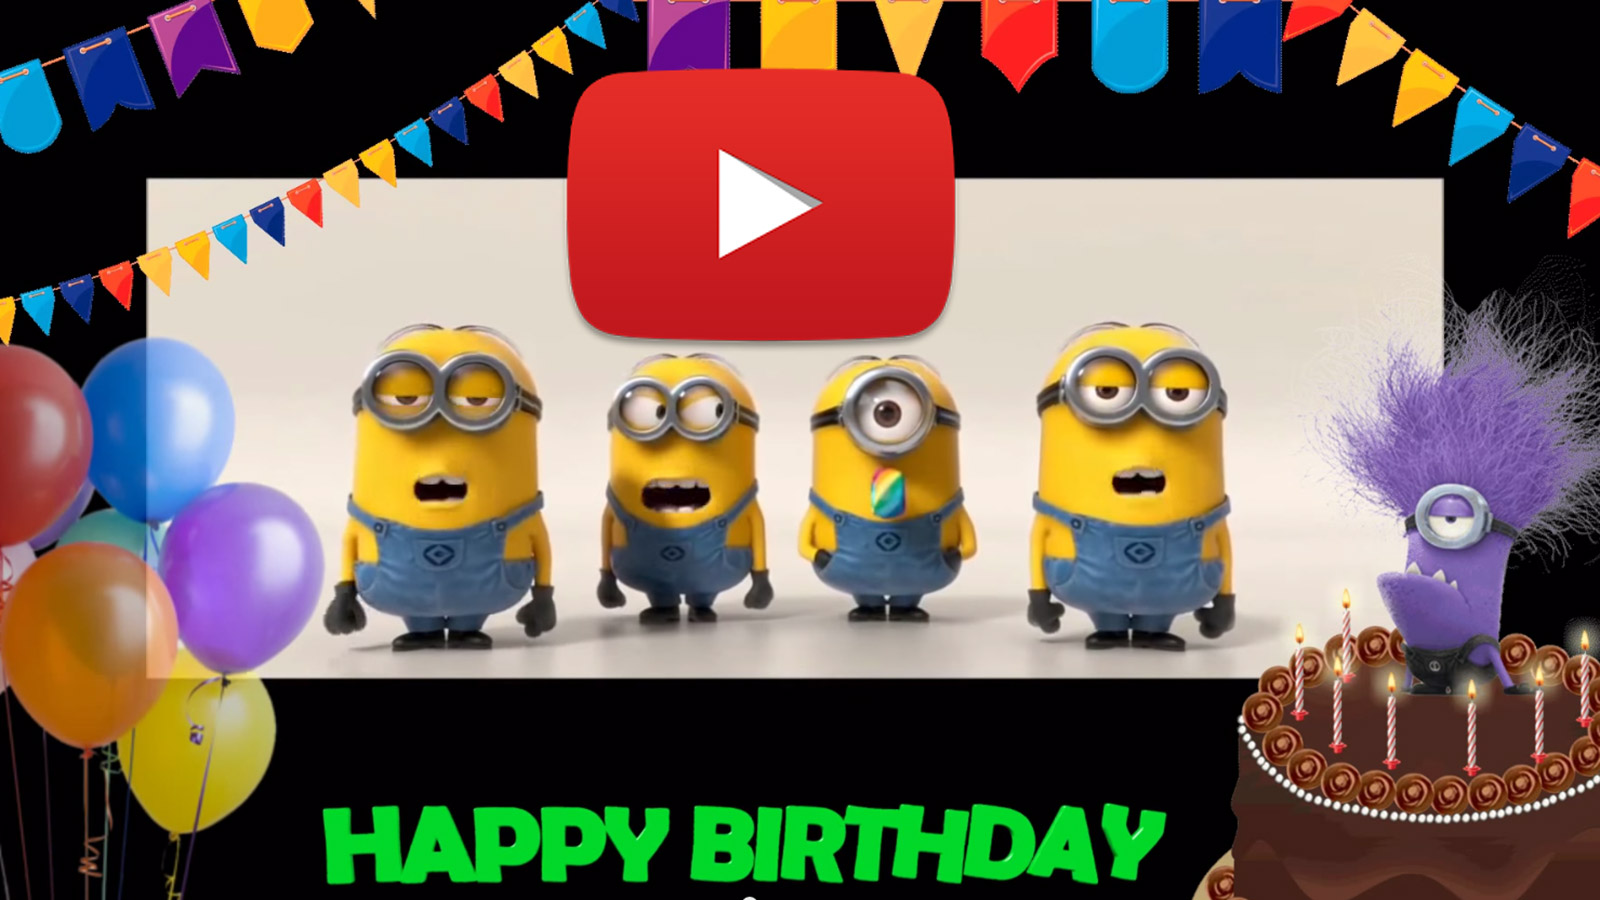 Happy Birthday Song Minions Gonrat You Friends Wit